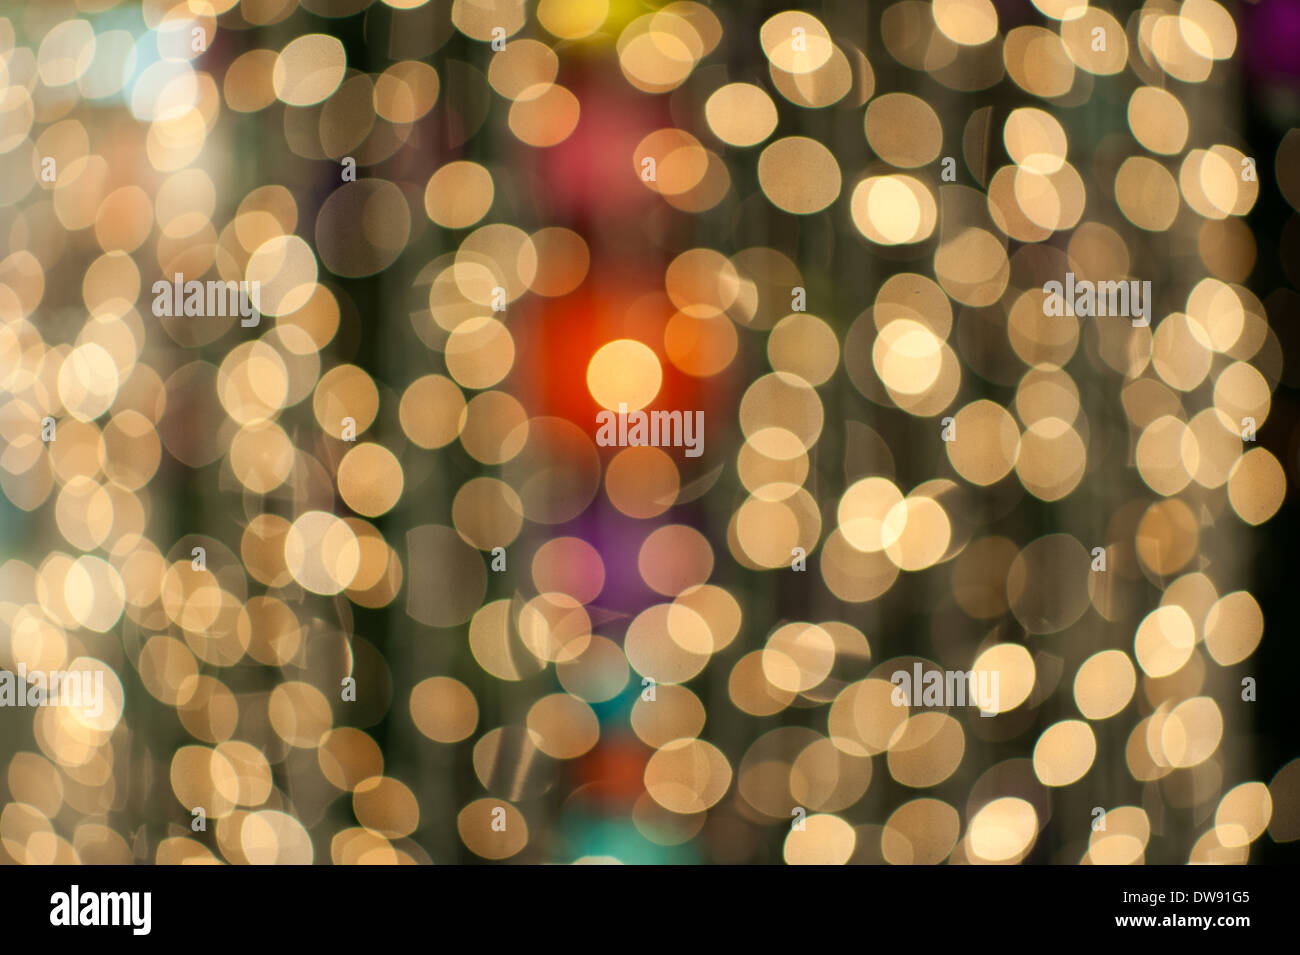 Abstract display of unfocused Christmas lights. - Stock Image